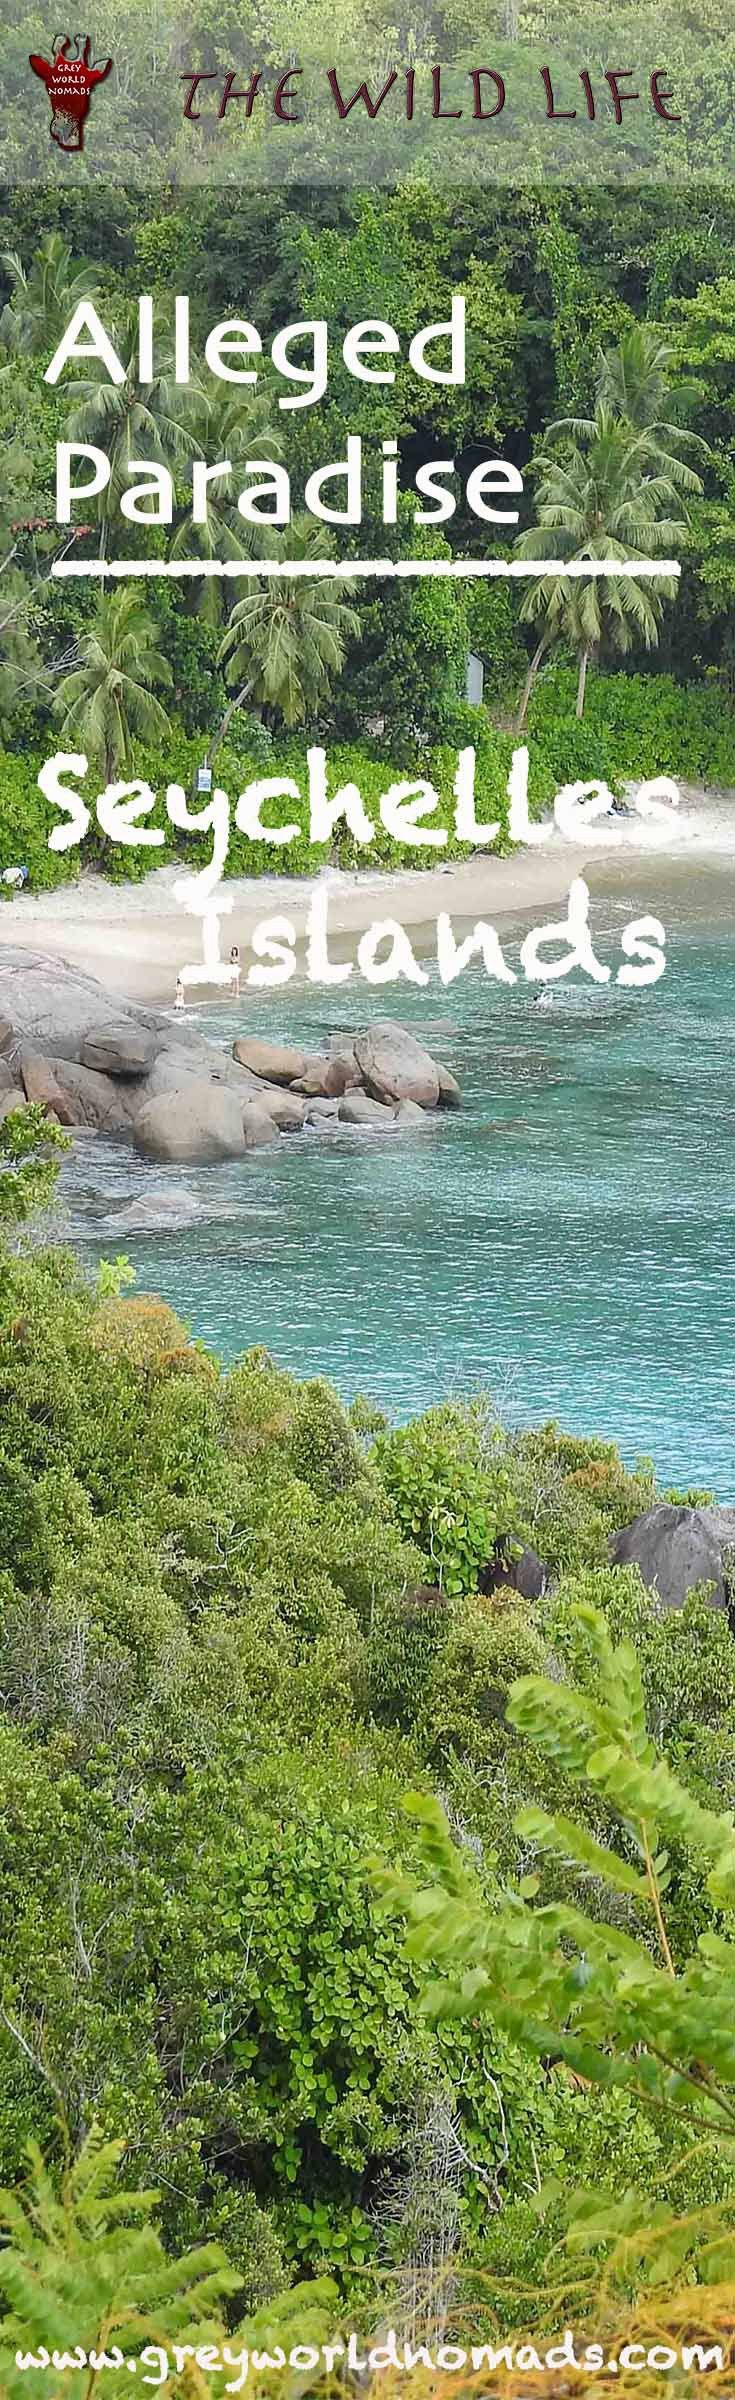 Seychelles Islands - The Pros And Cons Of Alleged Paradise | THE WILD LIFE  Seychelles Islands, is it paradise? How is snorkeling and diving really,  the infrastructure, costs of living and do they care for environment  and wildlife?  #seychelles #seychellestourism #islands